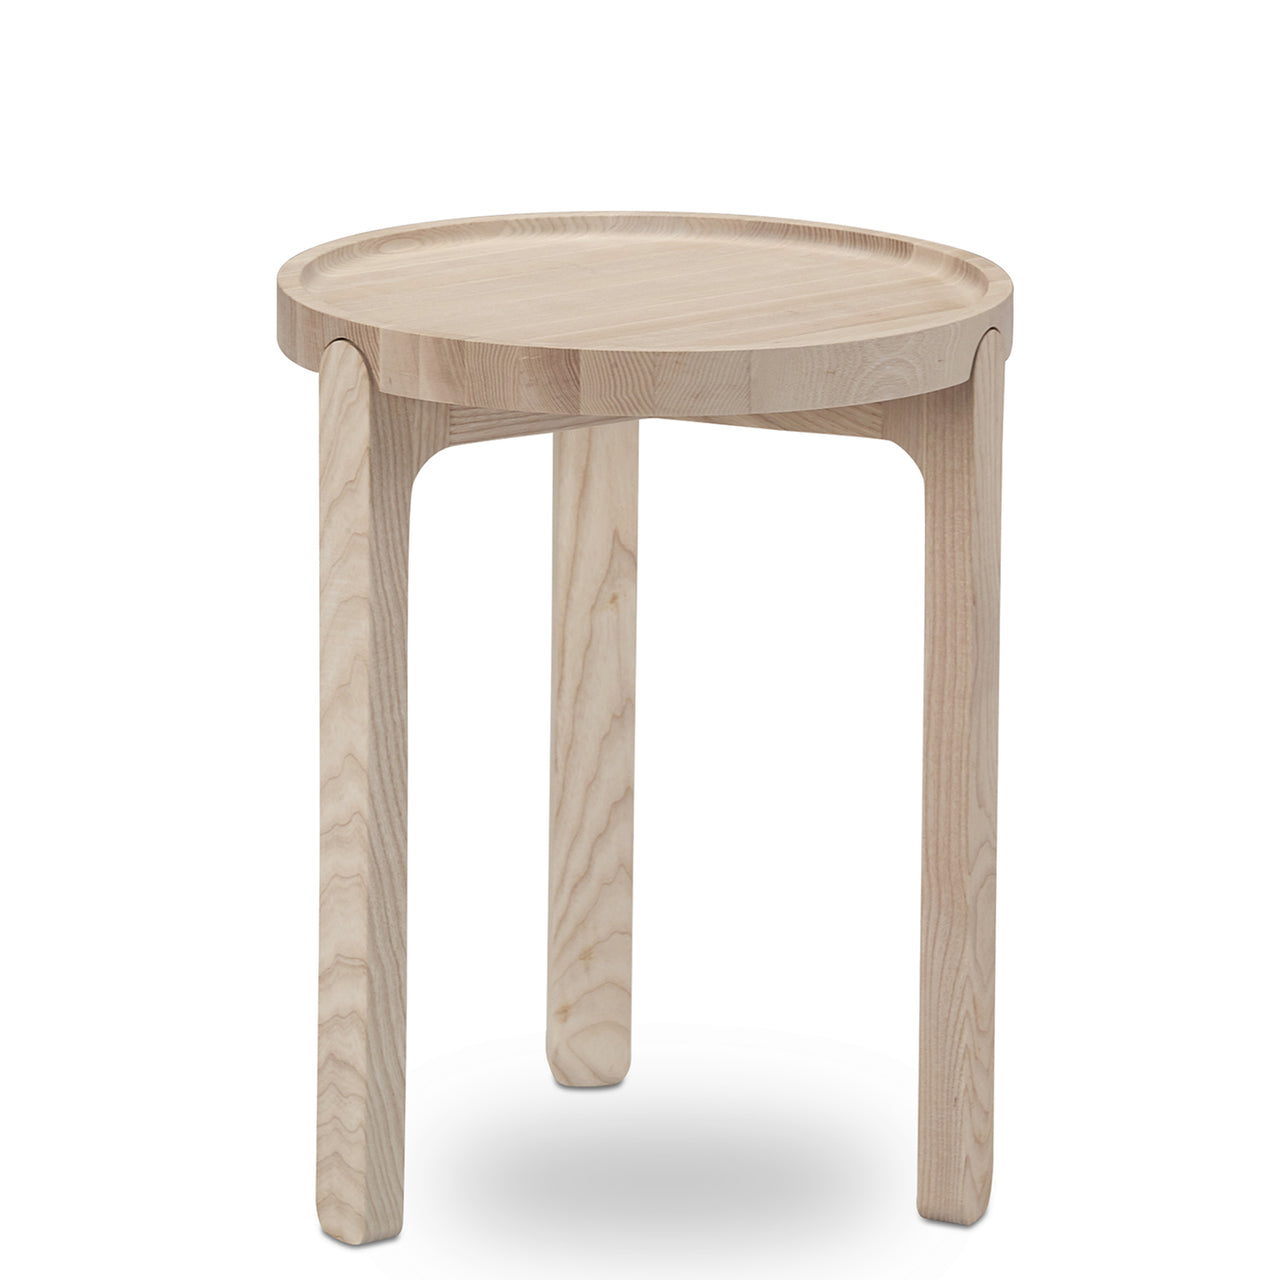 Indskud Tray Table